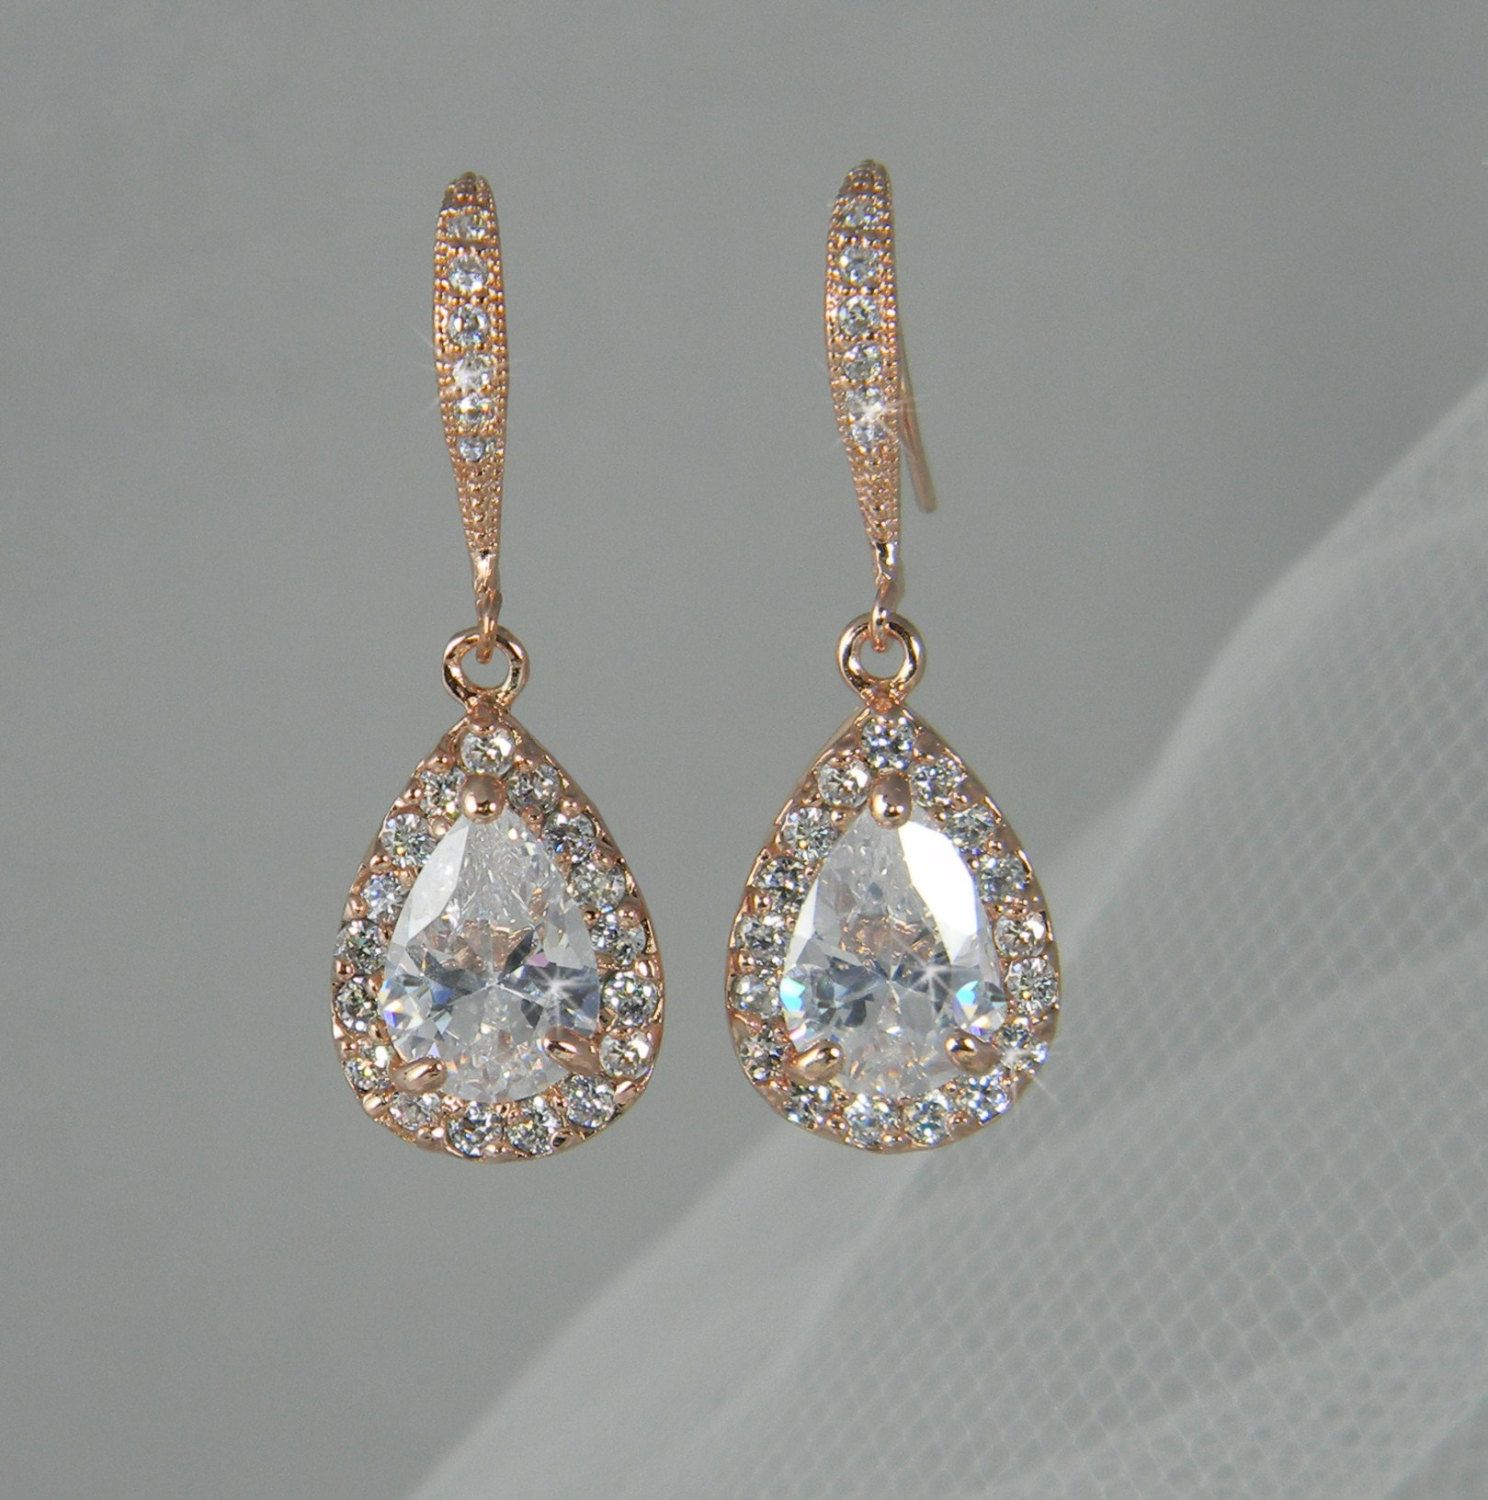 Rose Gold Bridal Earrings Wedding Jewelry By Crystalavenues, $3400